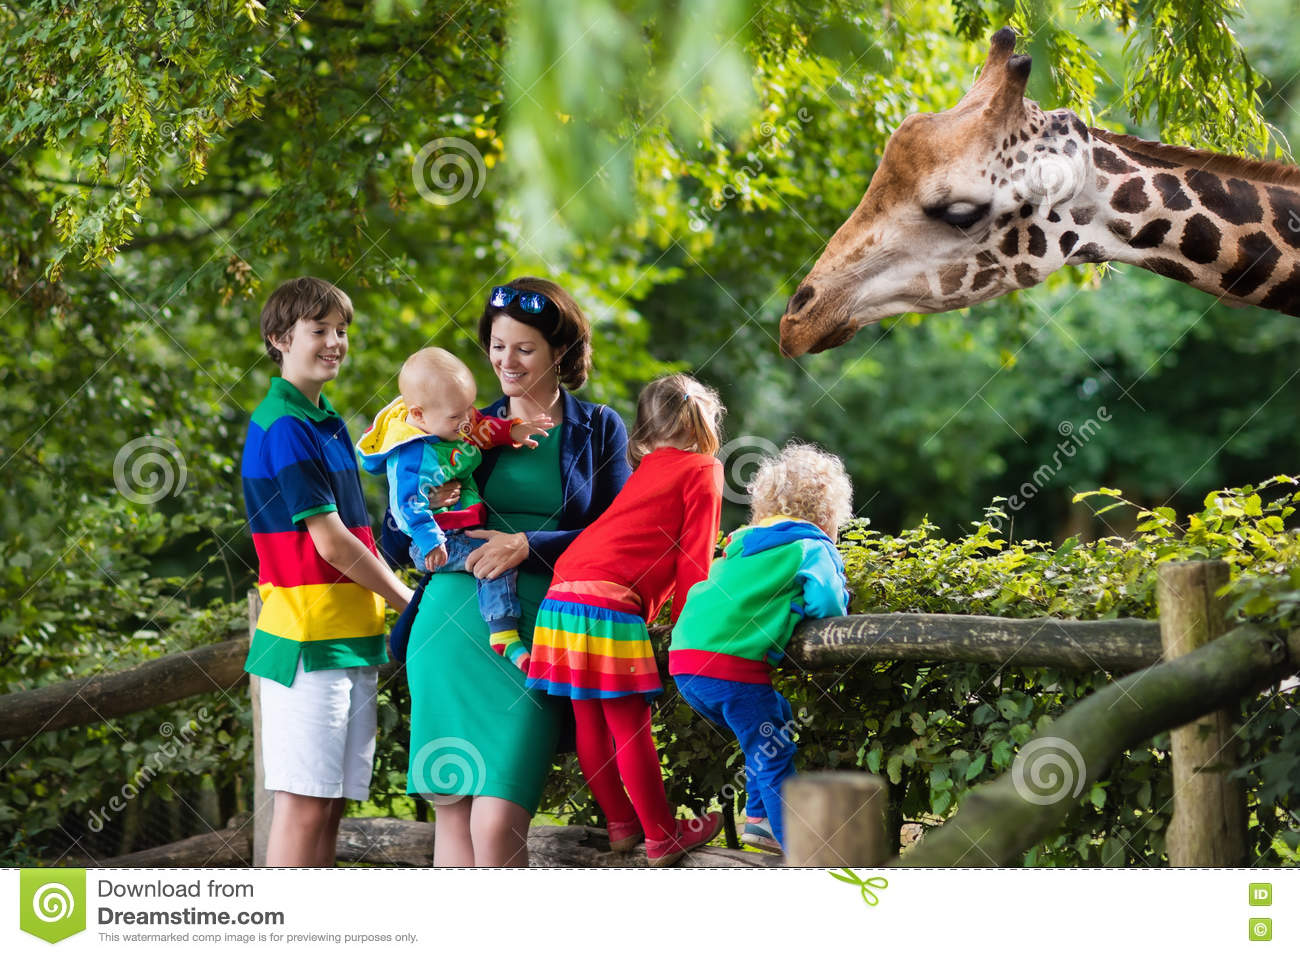 Mother and kids feeding giraffe at the zoo